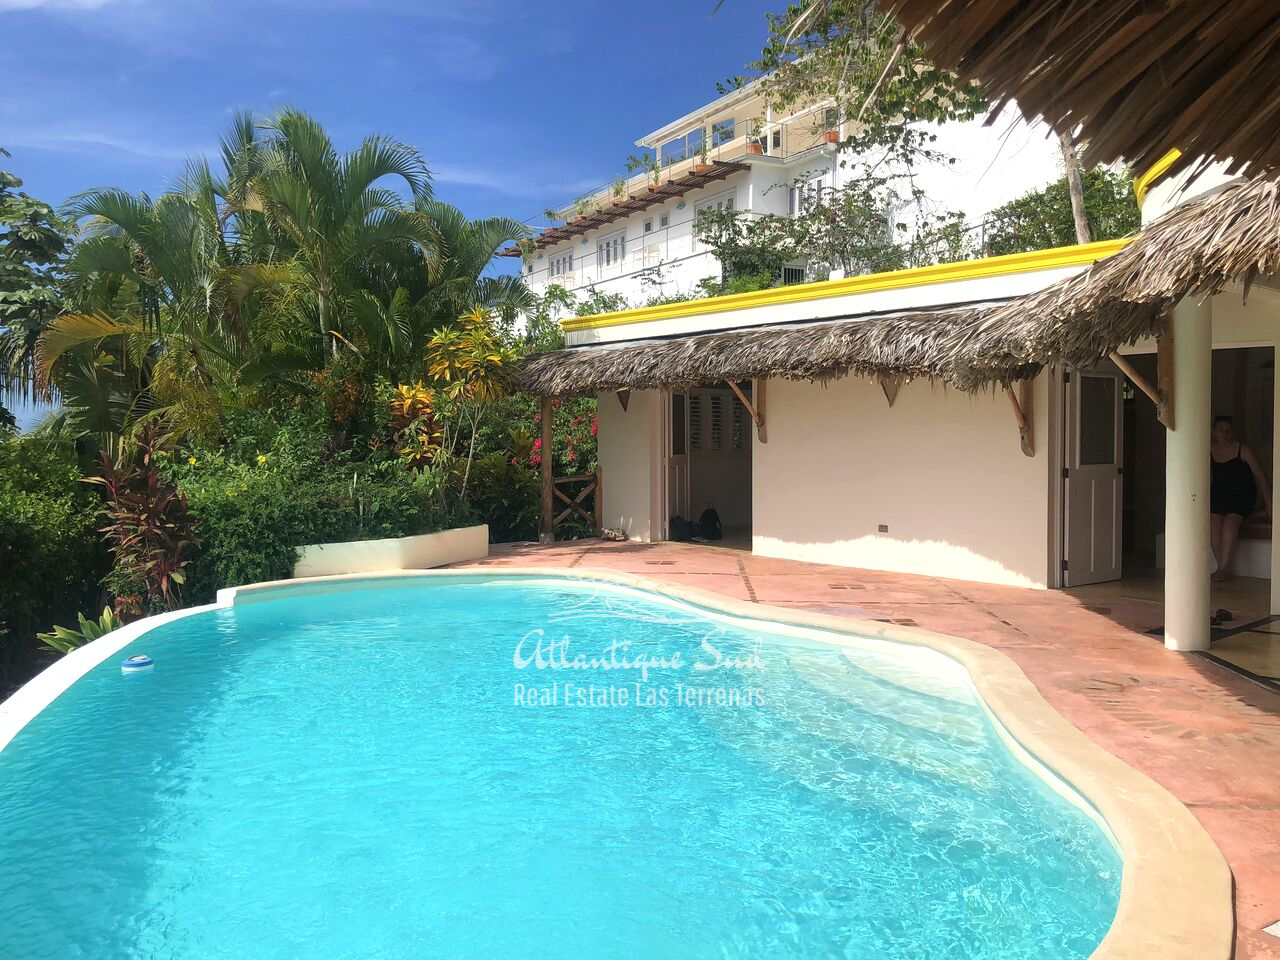 caribbean-style-villa-on-hill-for-sale11.png